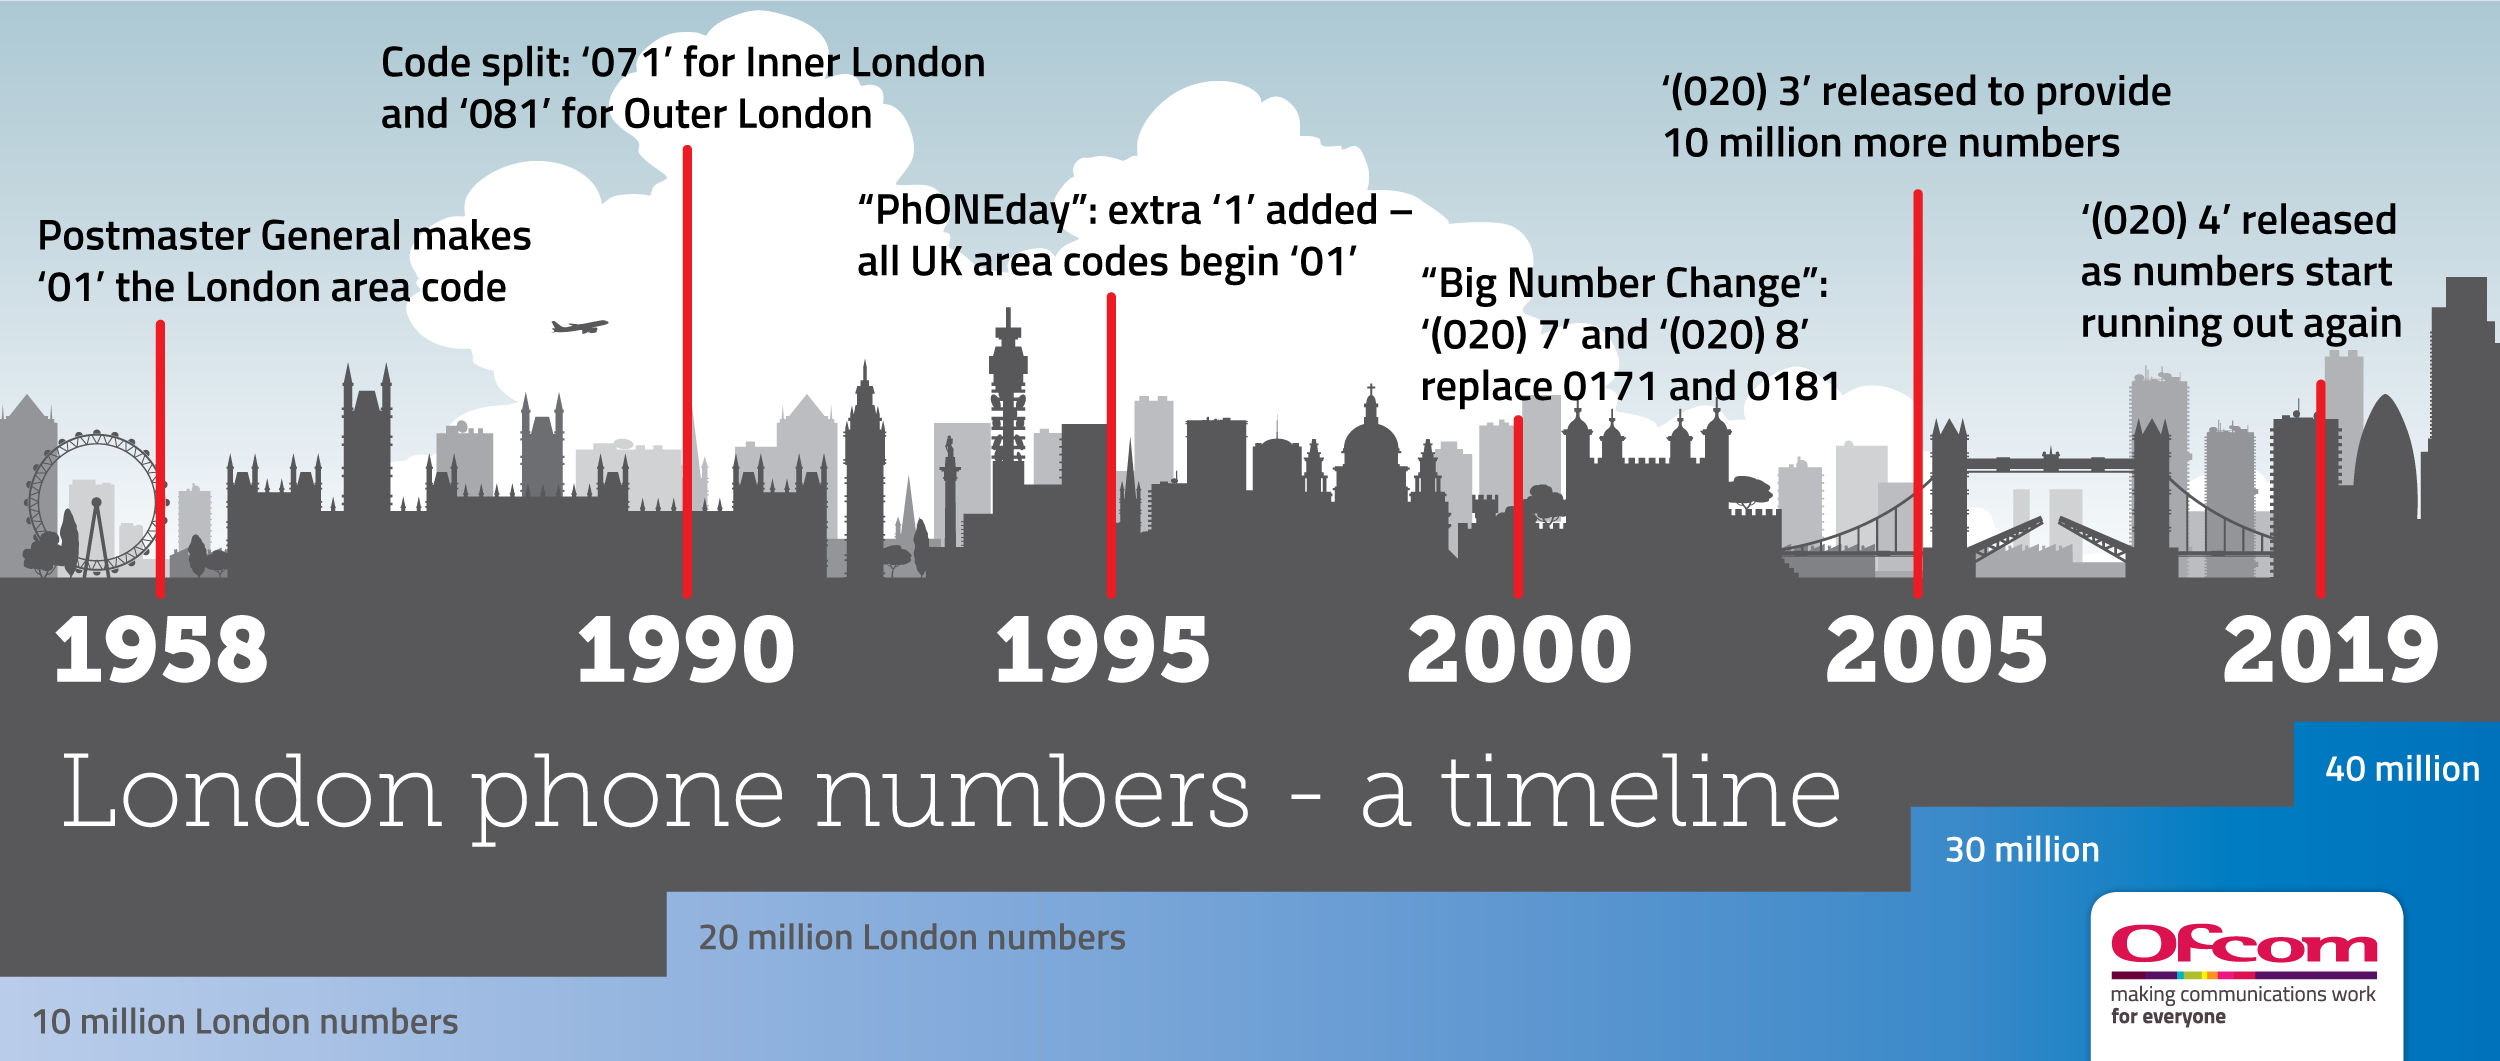 10 million new London numbers will be available following the release of '(020) 4', the latest in several changes to London's area code.